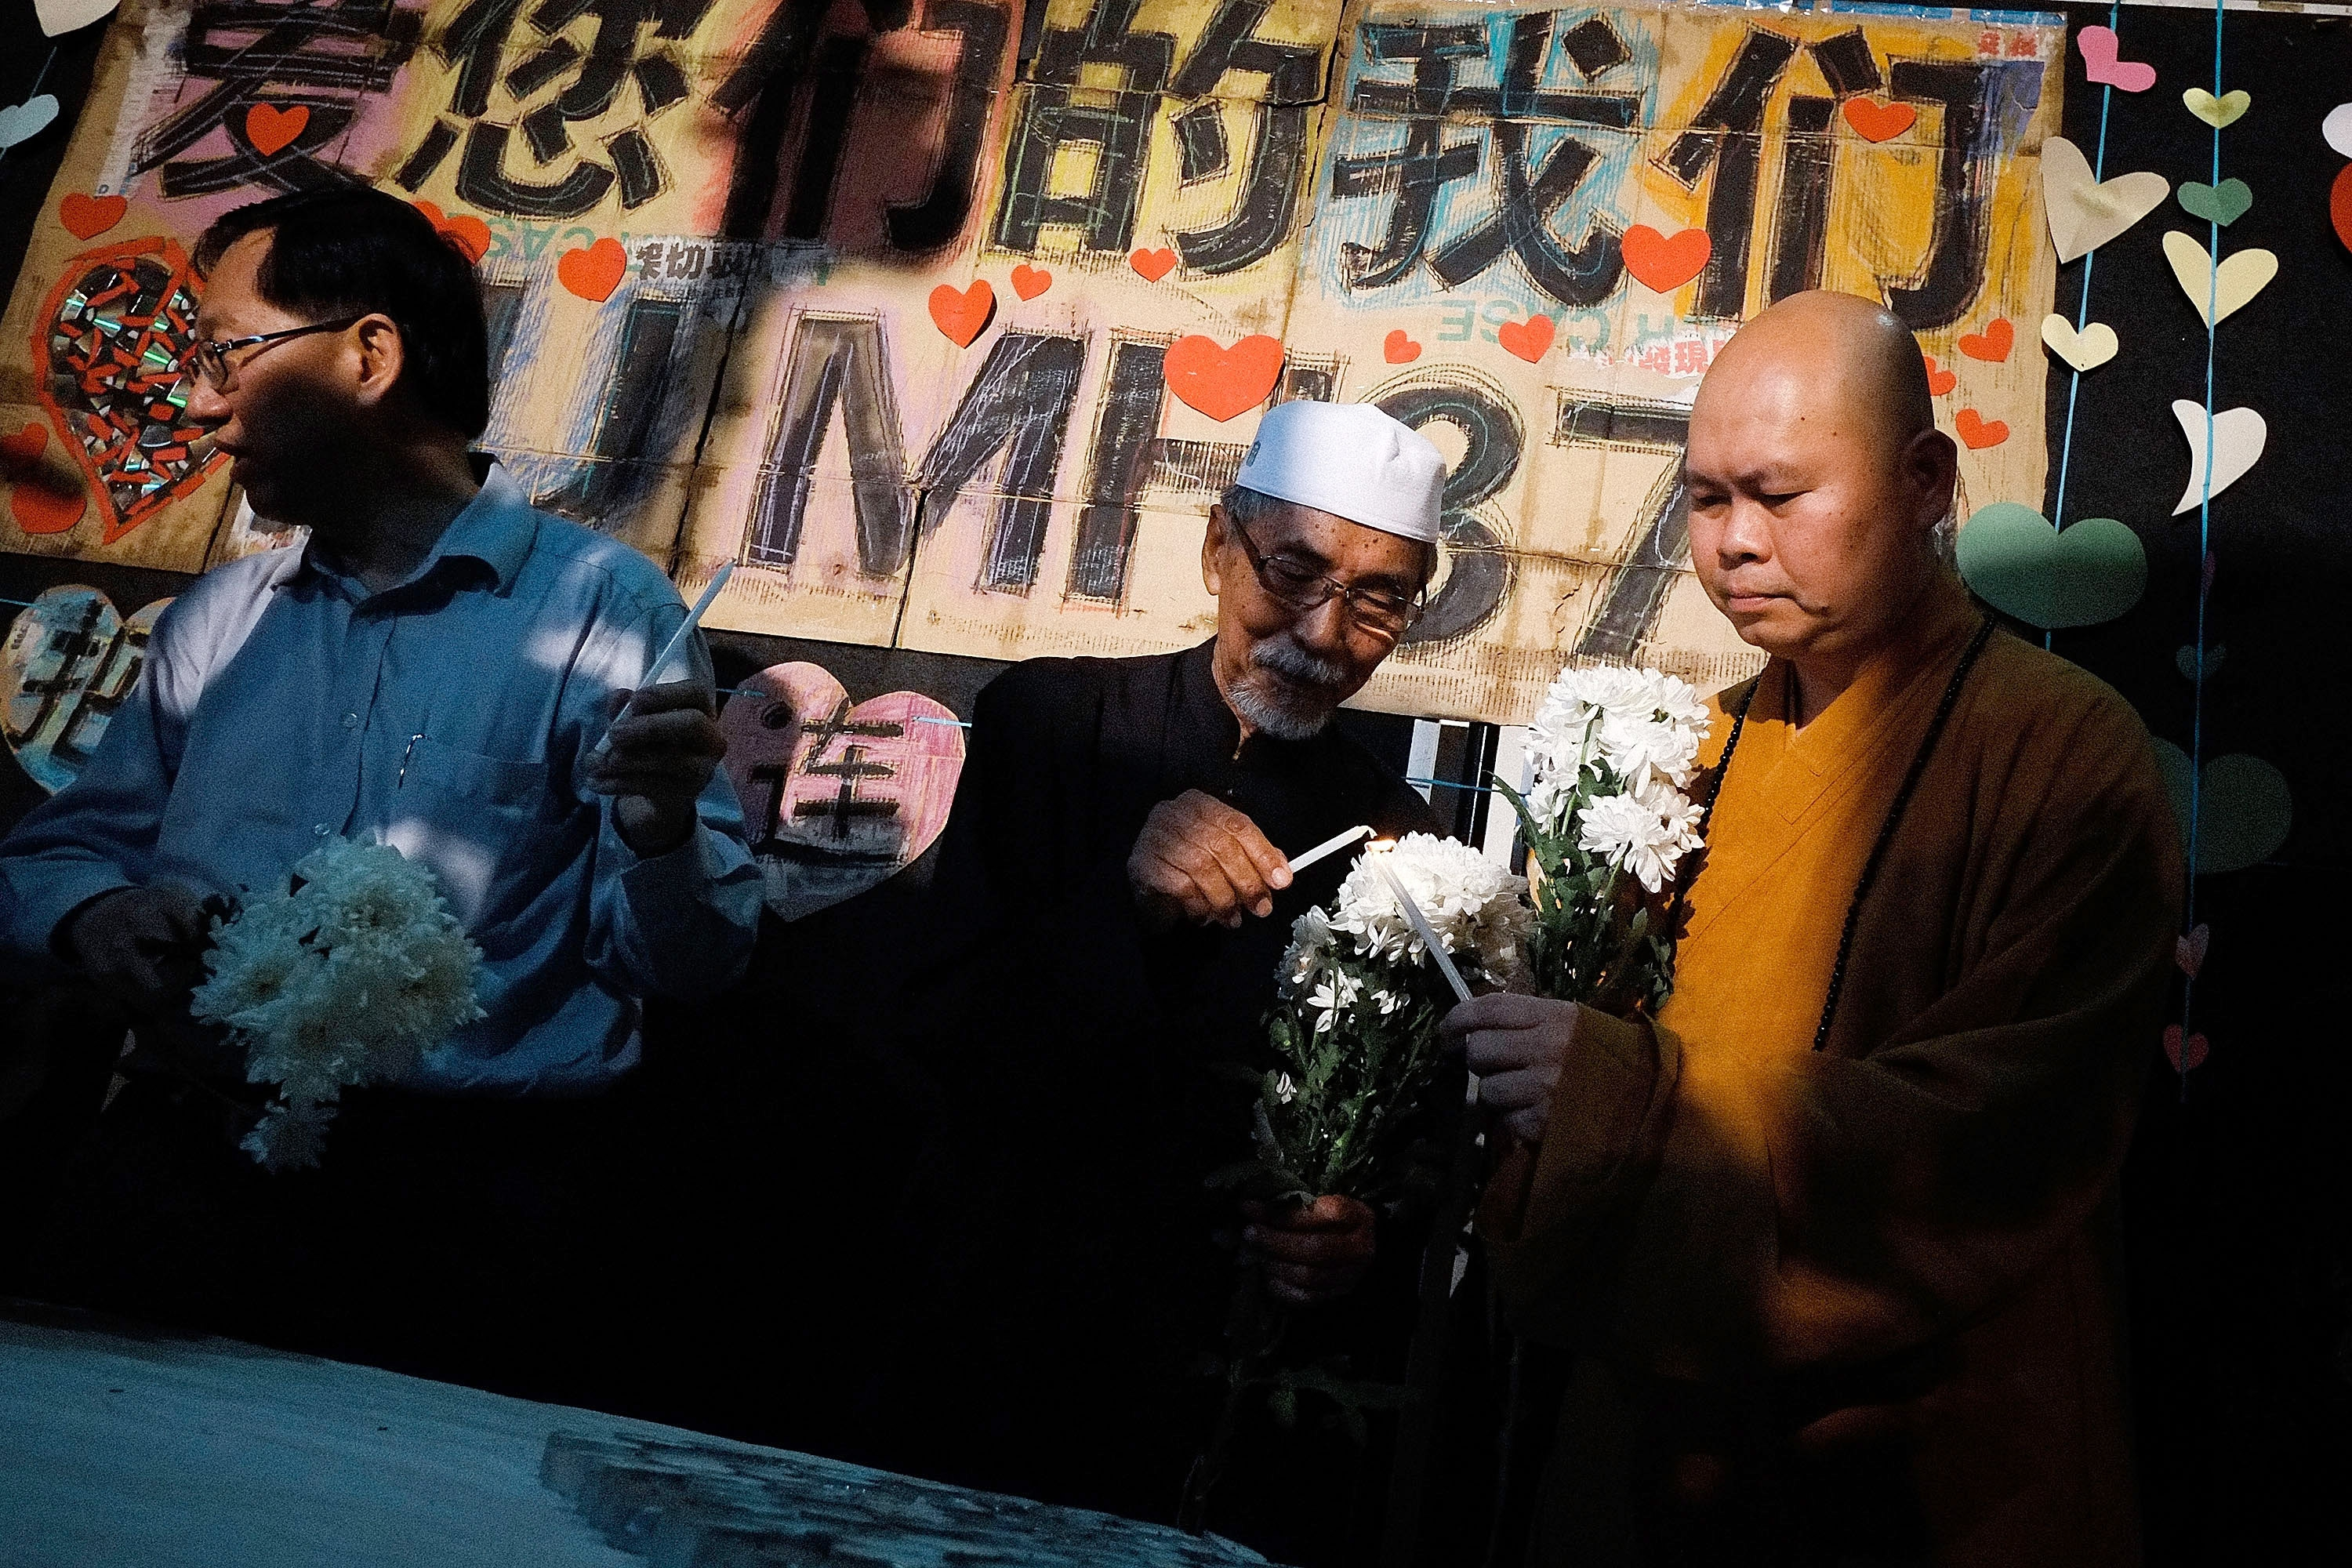 Representative from Muslim, Buddhist and Christian religions light candles during a vigil to remember the victim of the ill-fated Malaysia Airlines Flight 370 on Sunday in Kuala Lumpur, Malaysia.